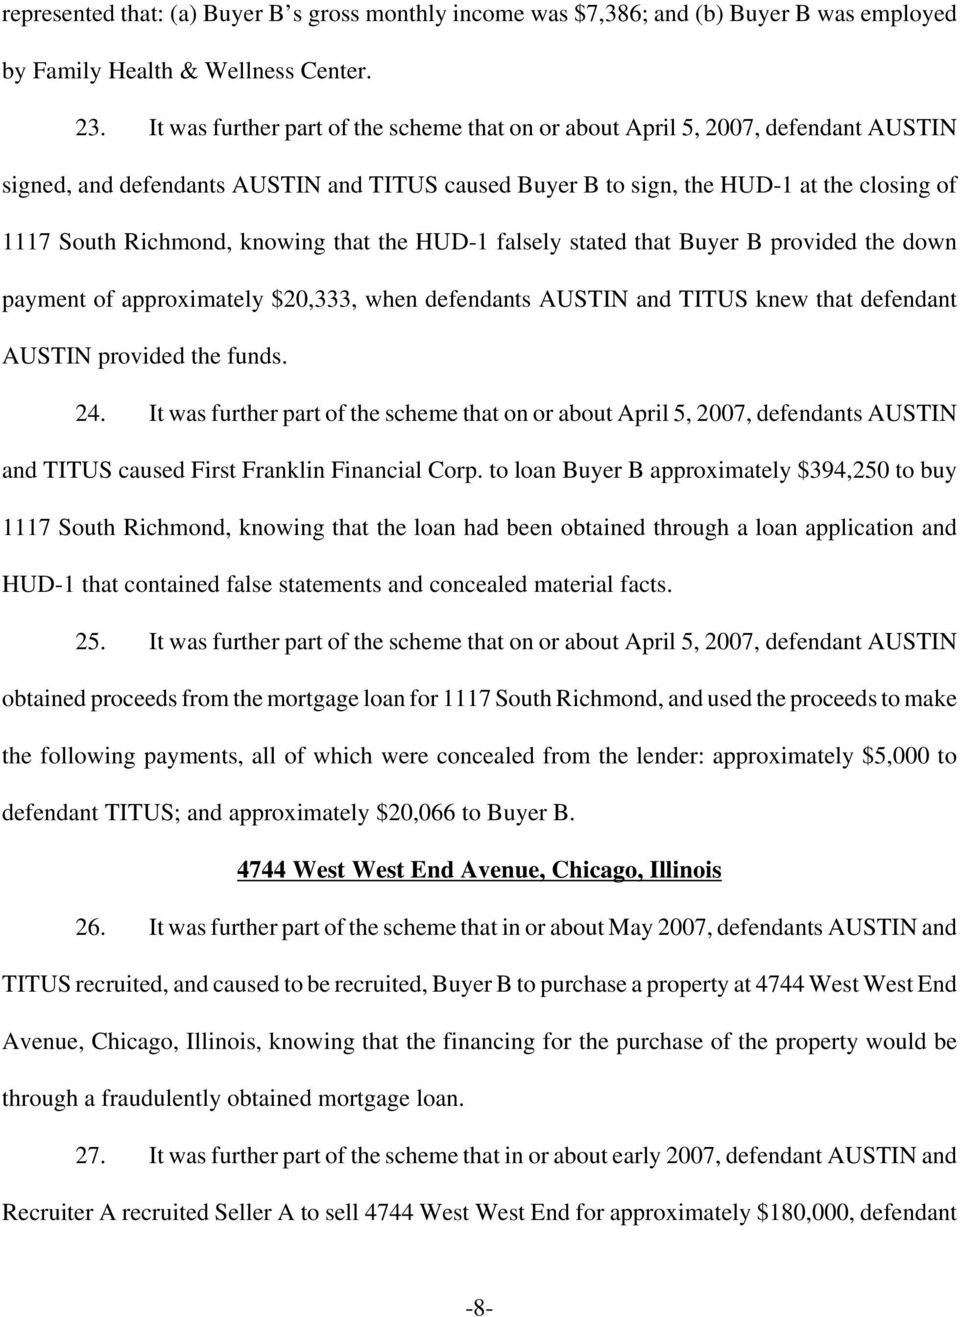 knowing that the HUD-1 falsely stated that Buyer B provided the down payment of approximately $20,333, when defendants AUSTIN and TITUS knew that defendant AUSTIN provided the funds. 24.